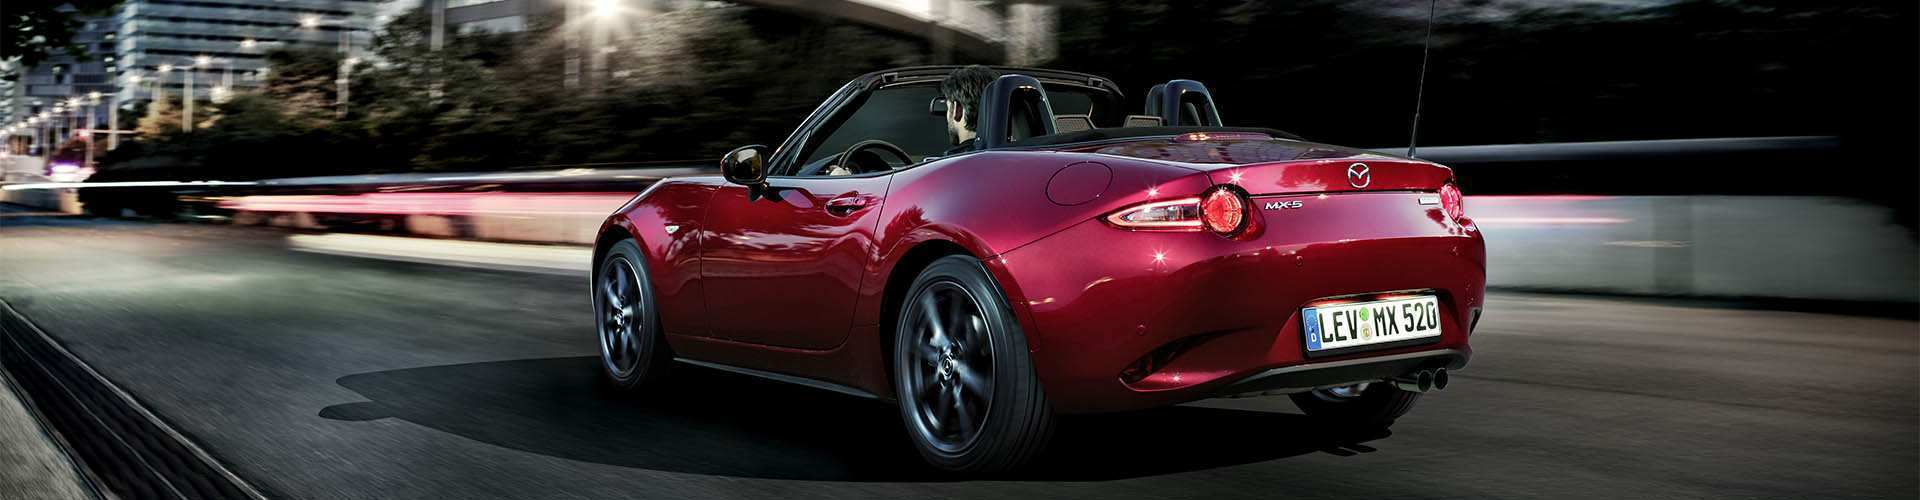 32 All New 2019 Mazda MX 5 Model